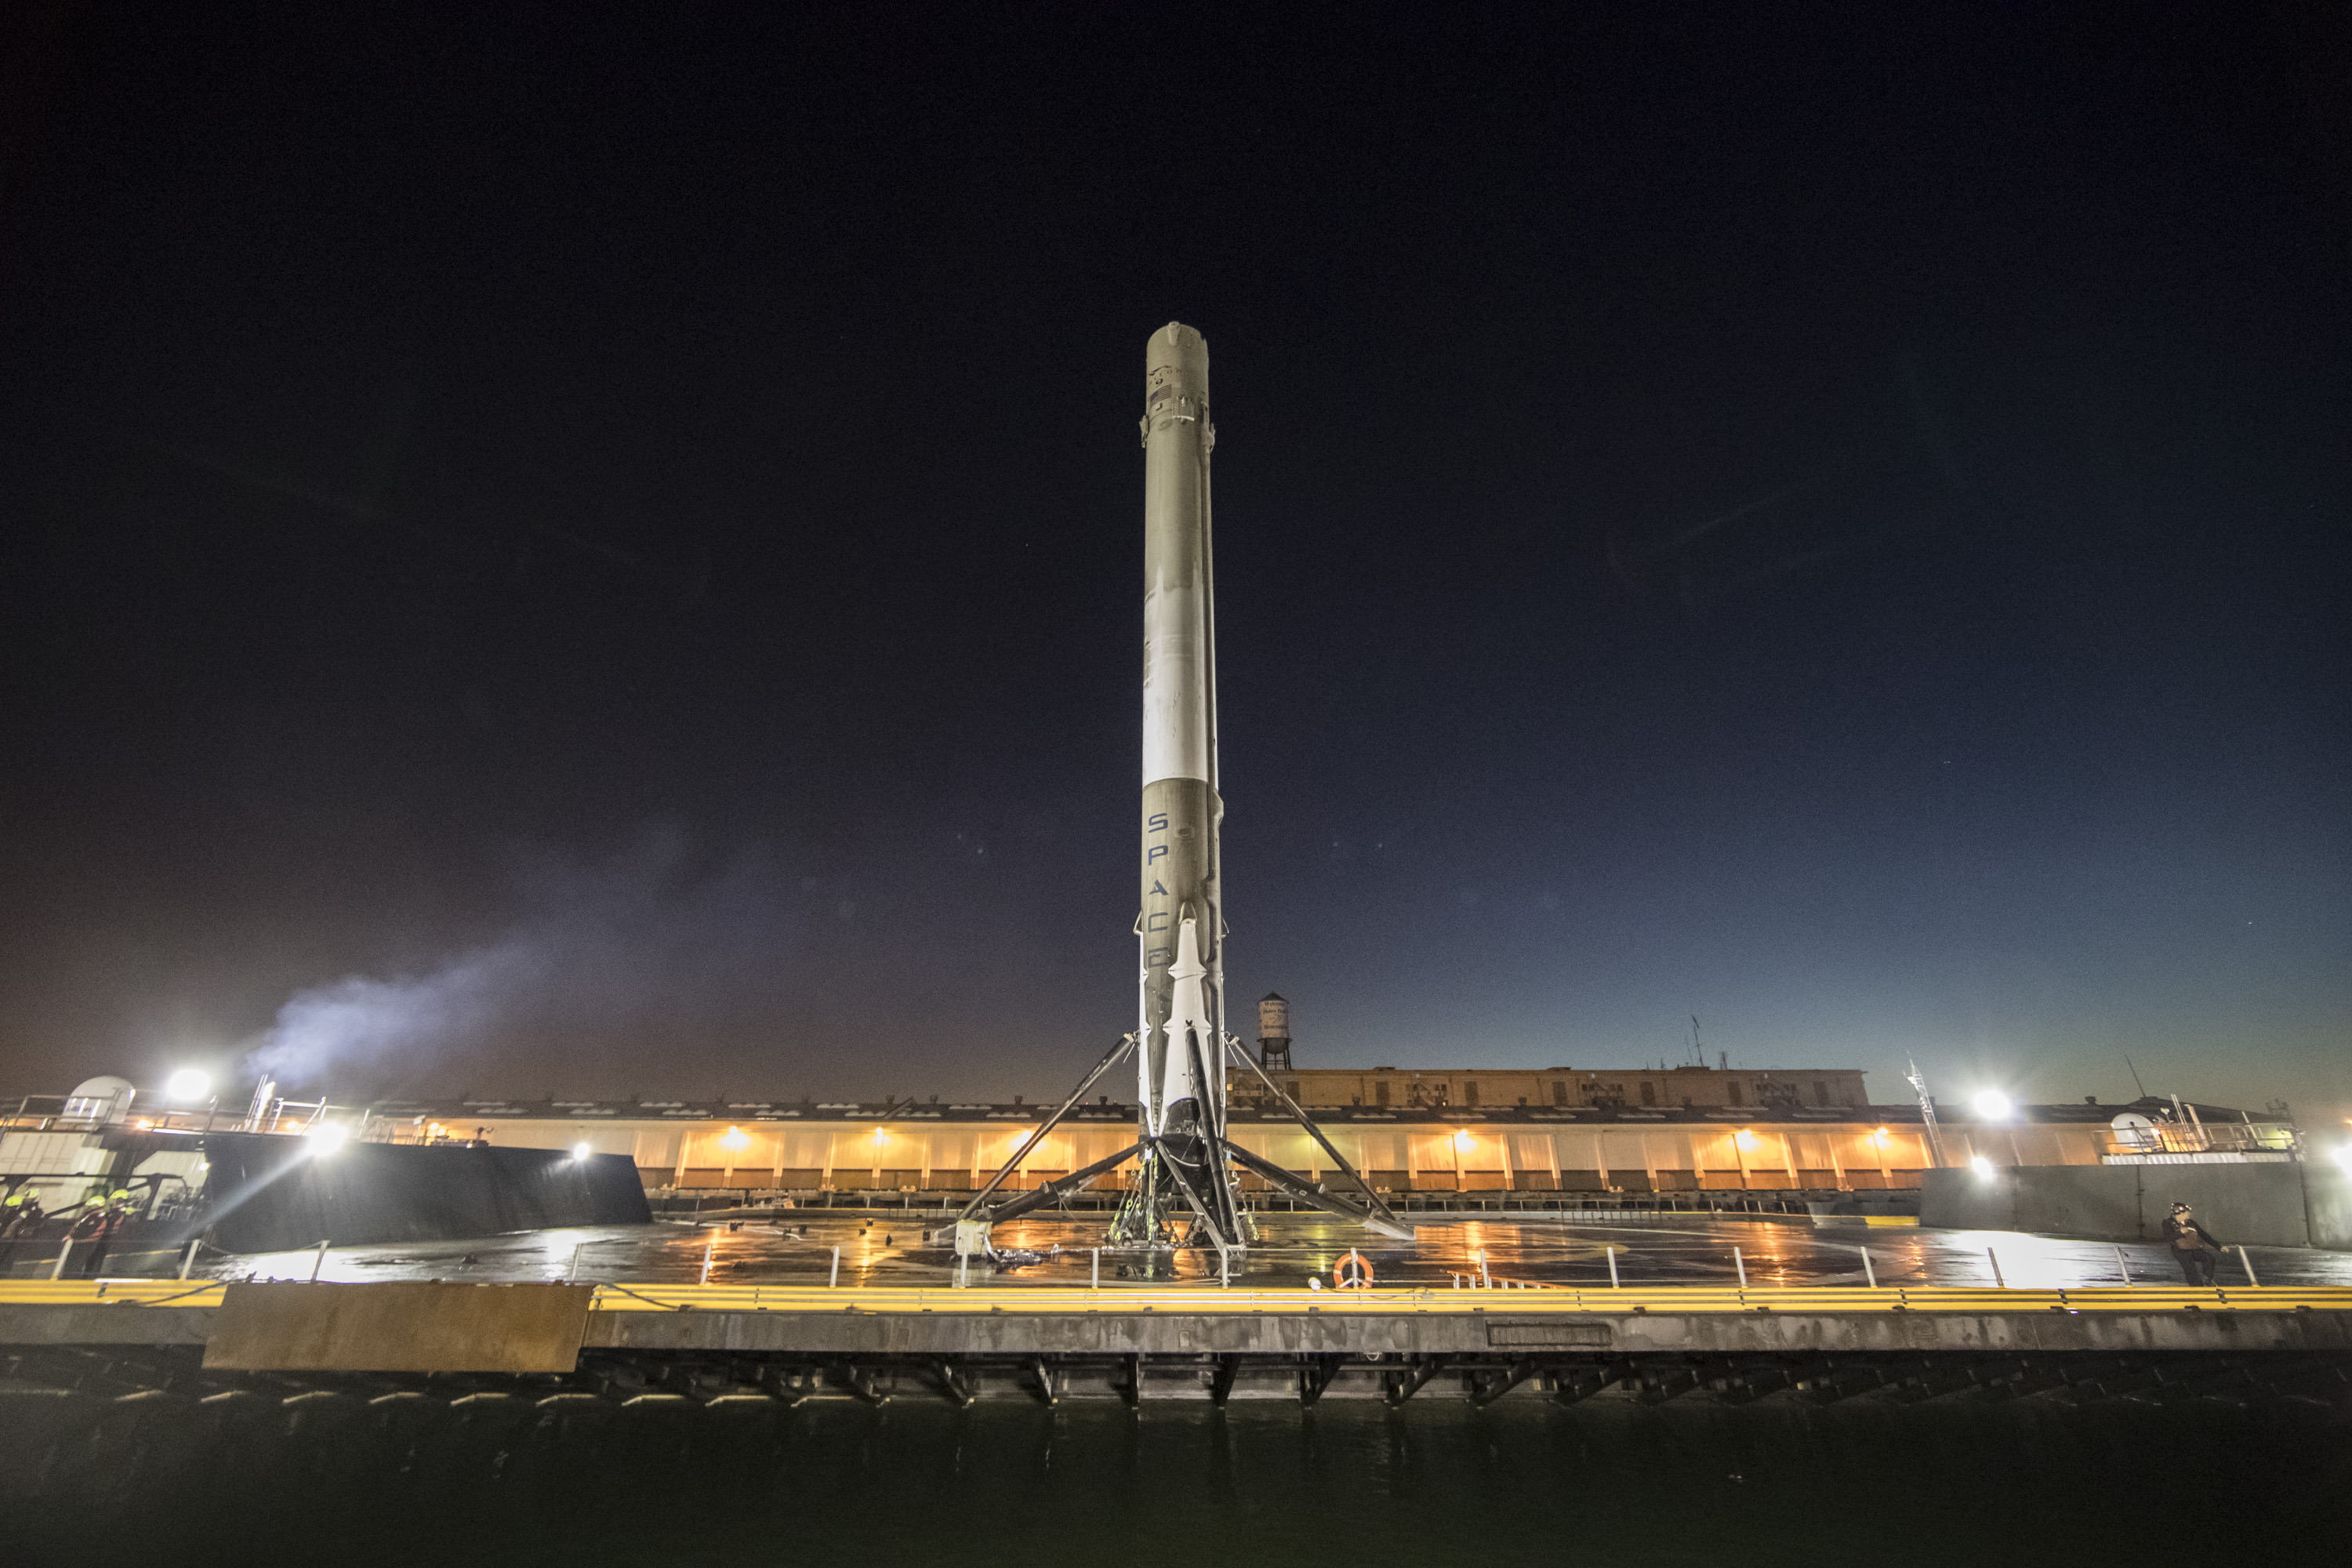 SpaceX won't attempt a landing after its next launch